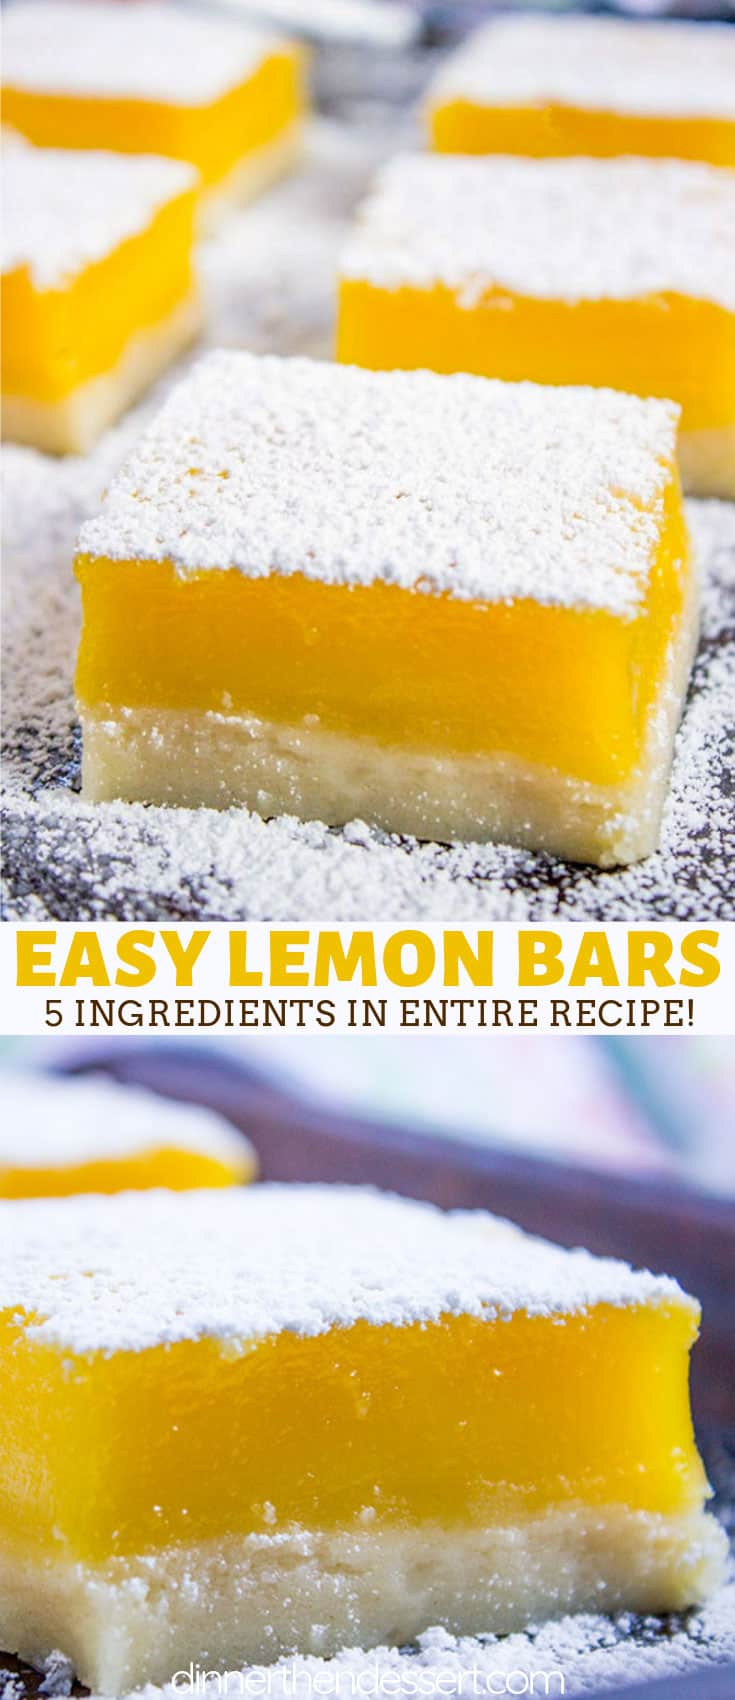 Easy Lemon Bars (Lemon Squares)